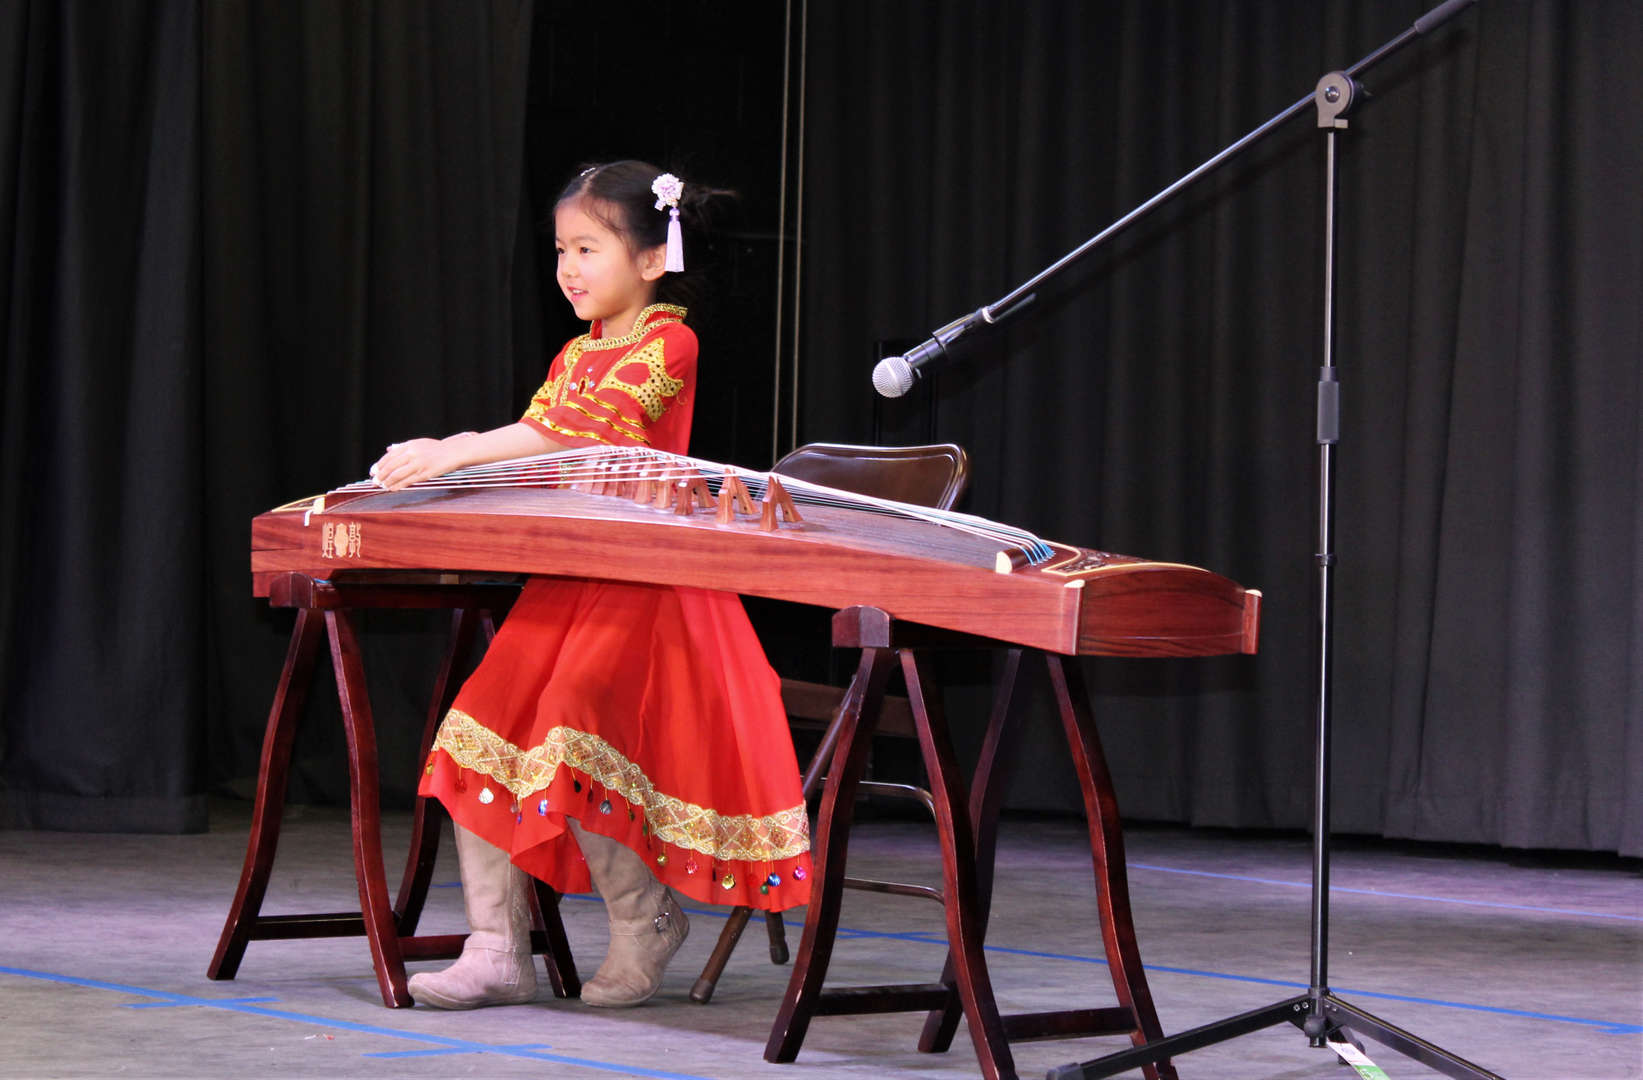 A female student plays the Chinese harp during One World Evening.